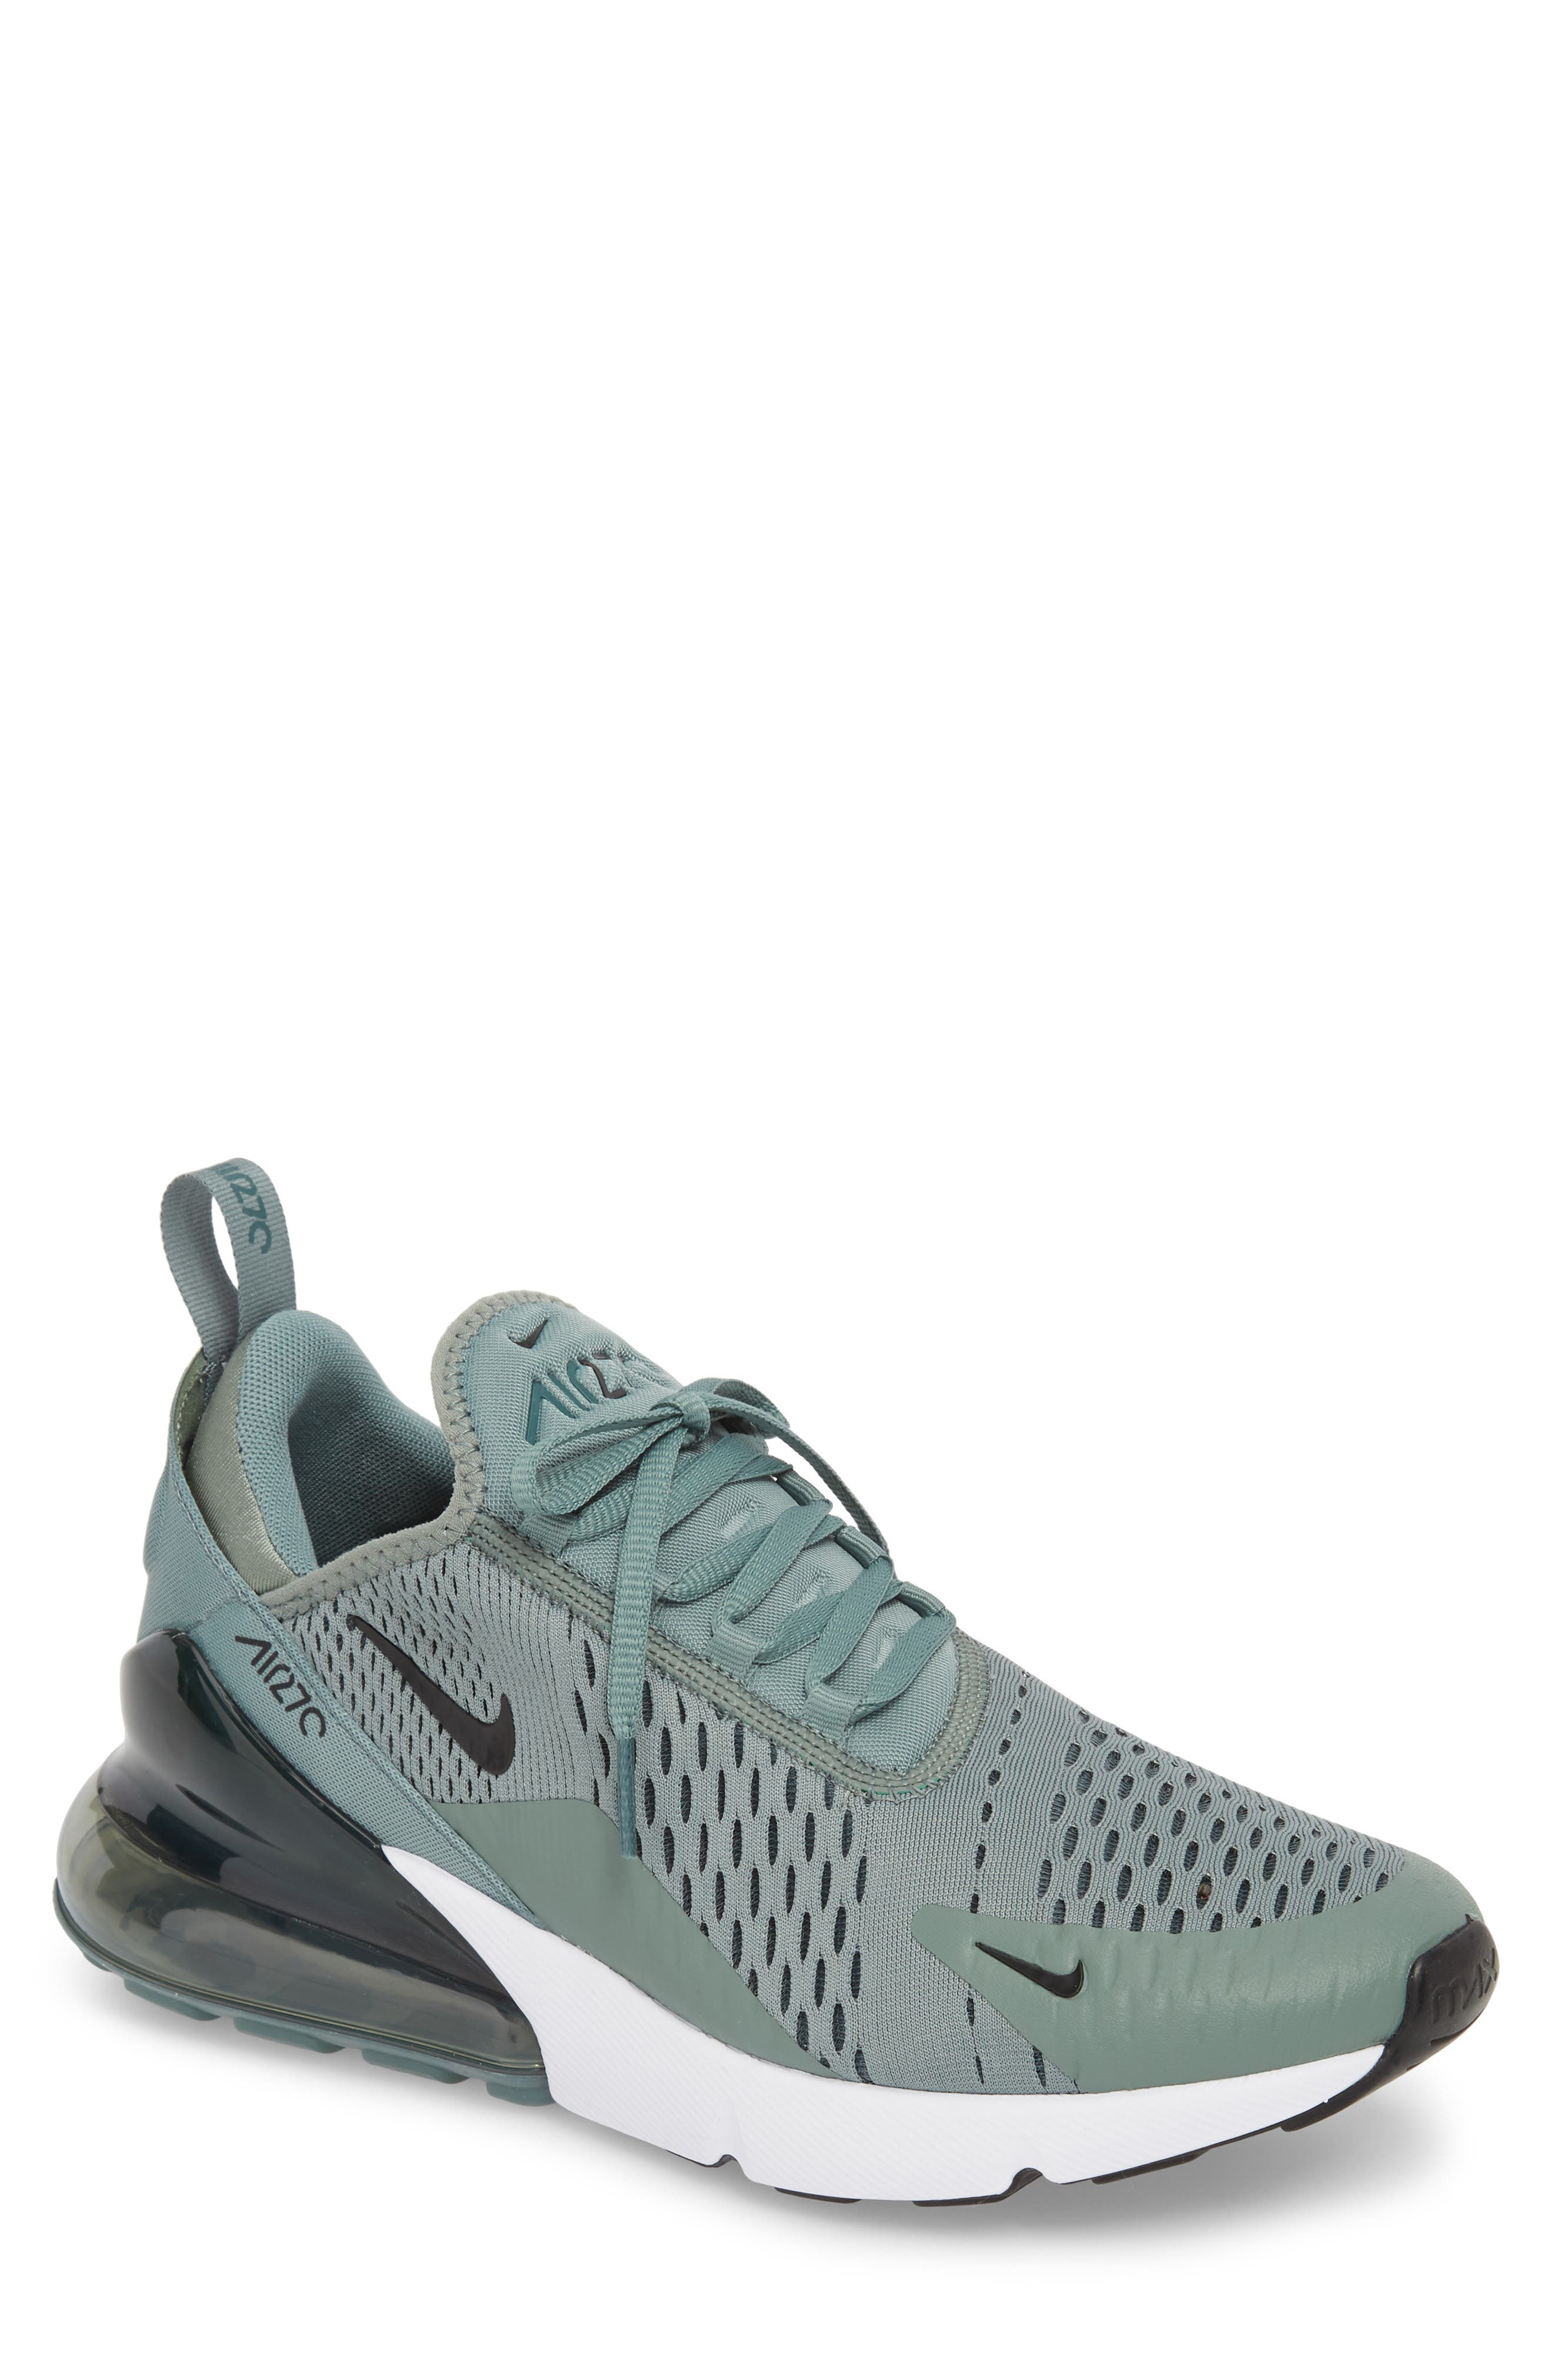 Nike Air Max 270 Sneaker (Men)